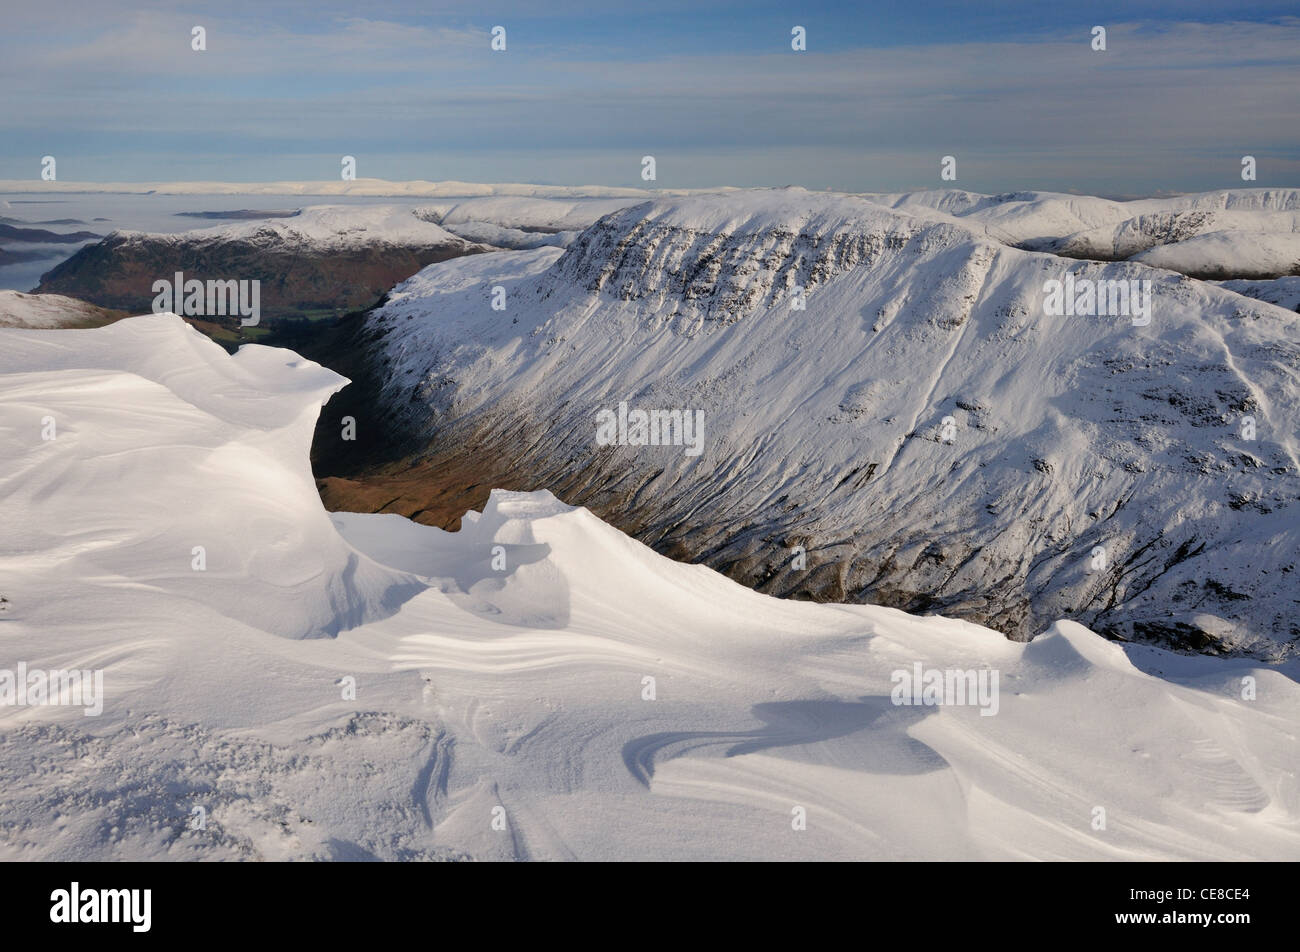 Sculpted cornices on Dollywaggon Pike looking over Grisedale Valley towards St Sunday Crag. Winter in the Lake District - Stock Image